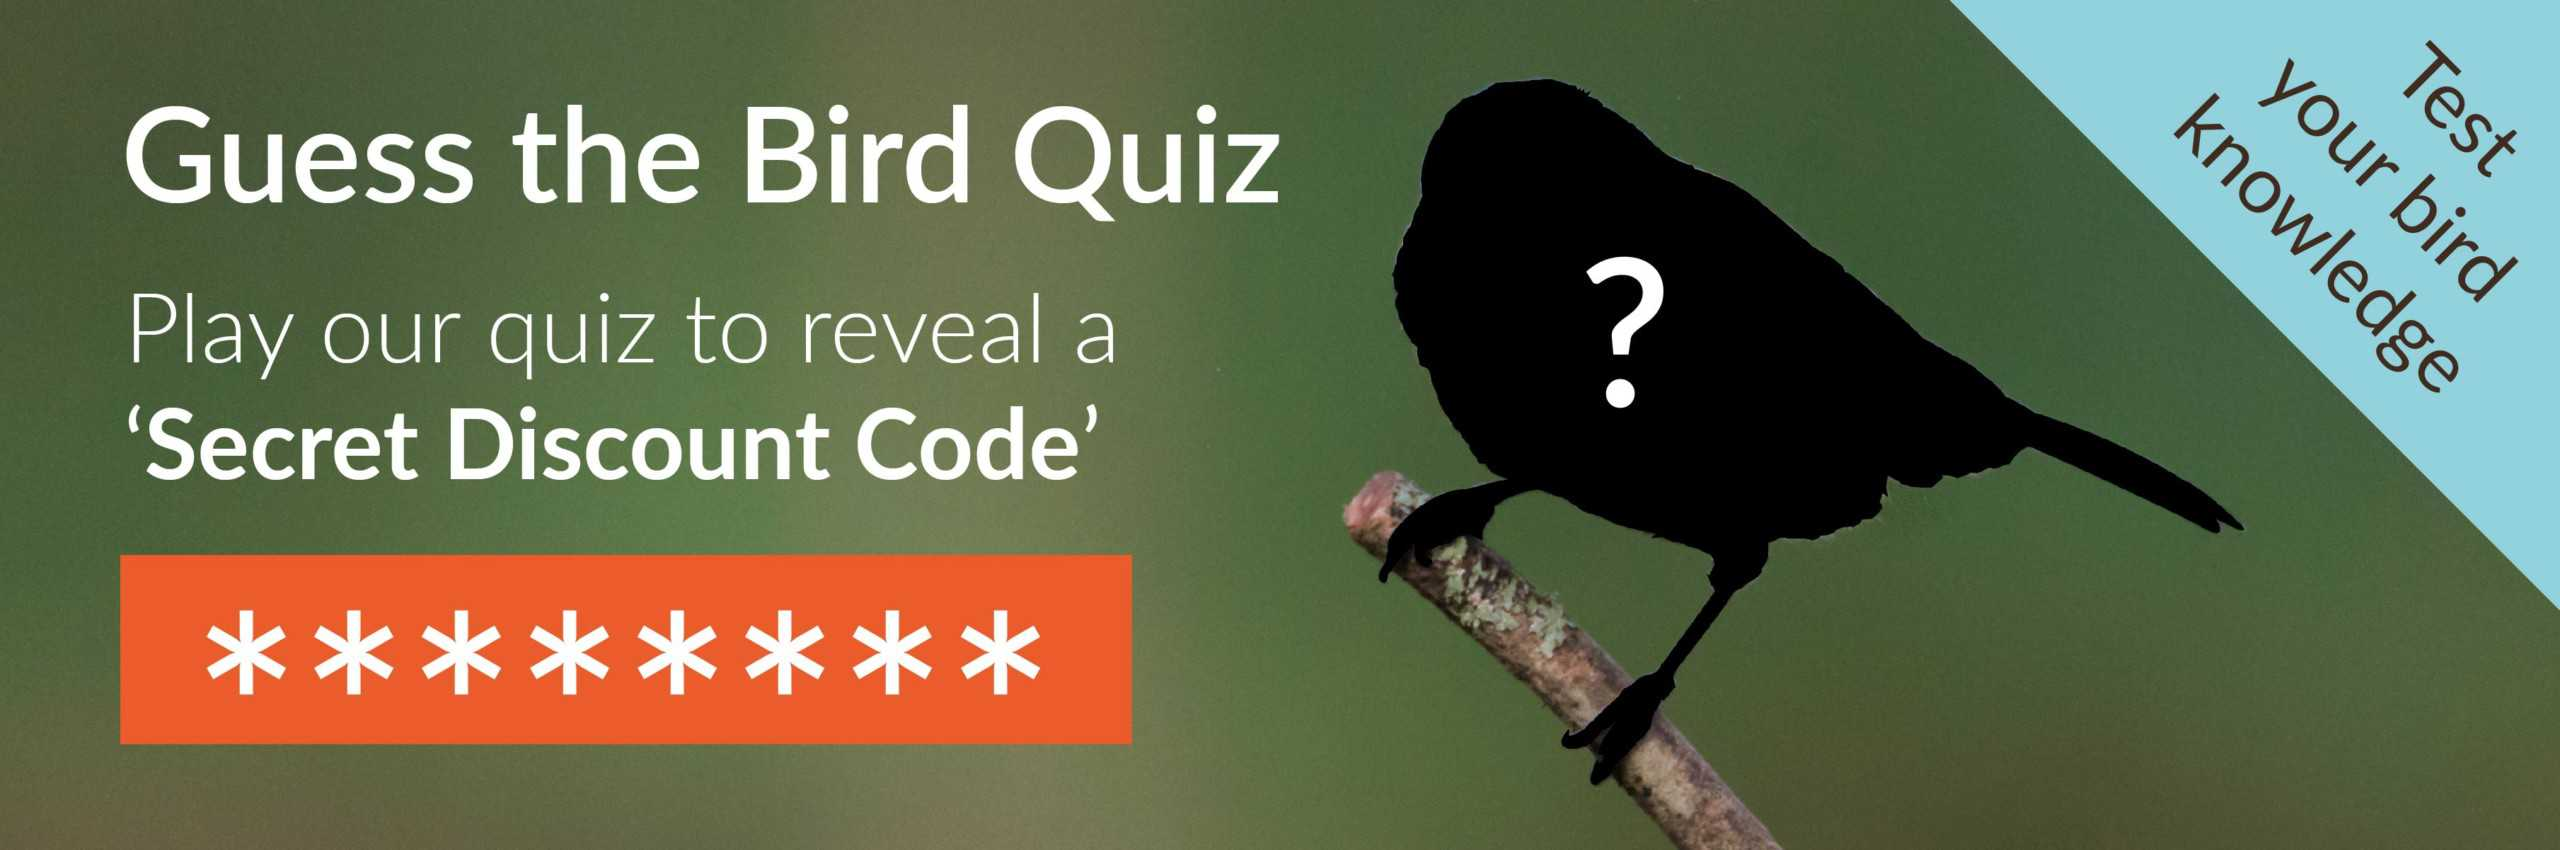 Guess The Bird Quiz